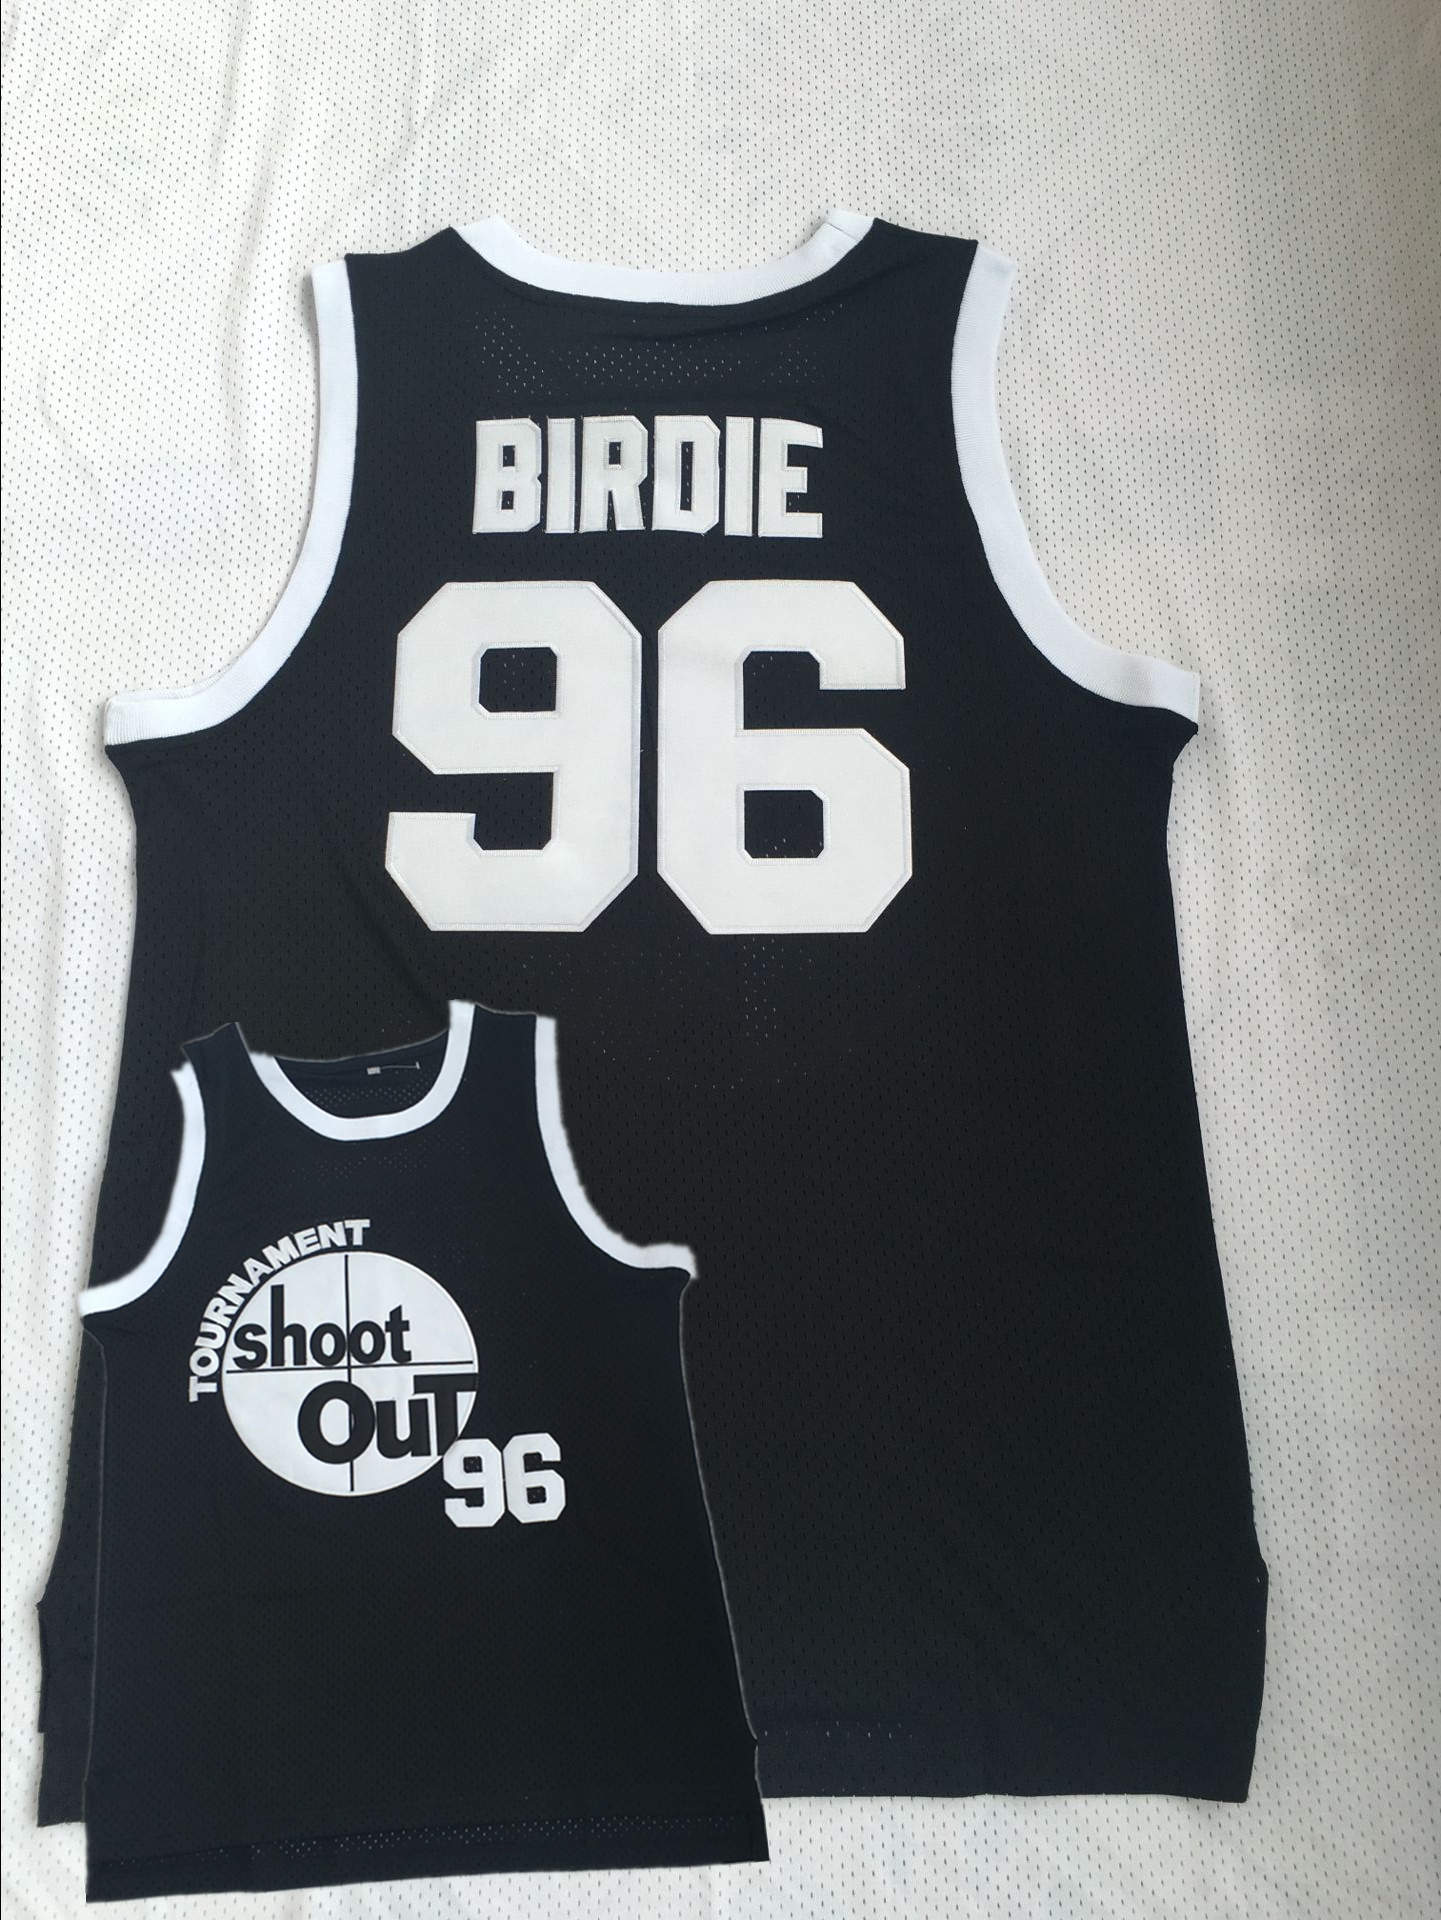 Tournament ShootOut 96 Birdie Black Throwback Movie Basketball Jersey